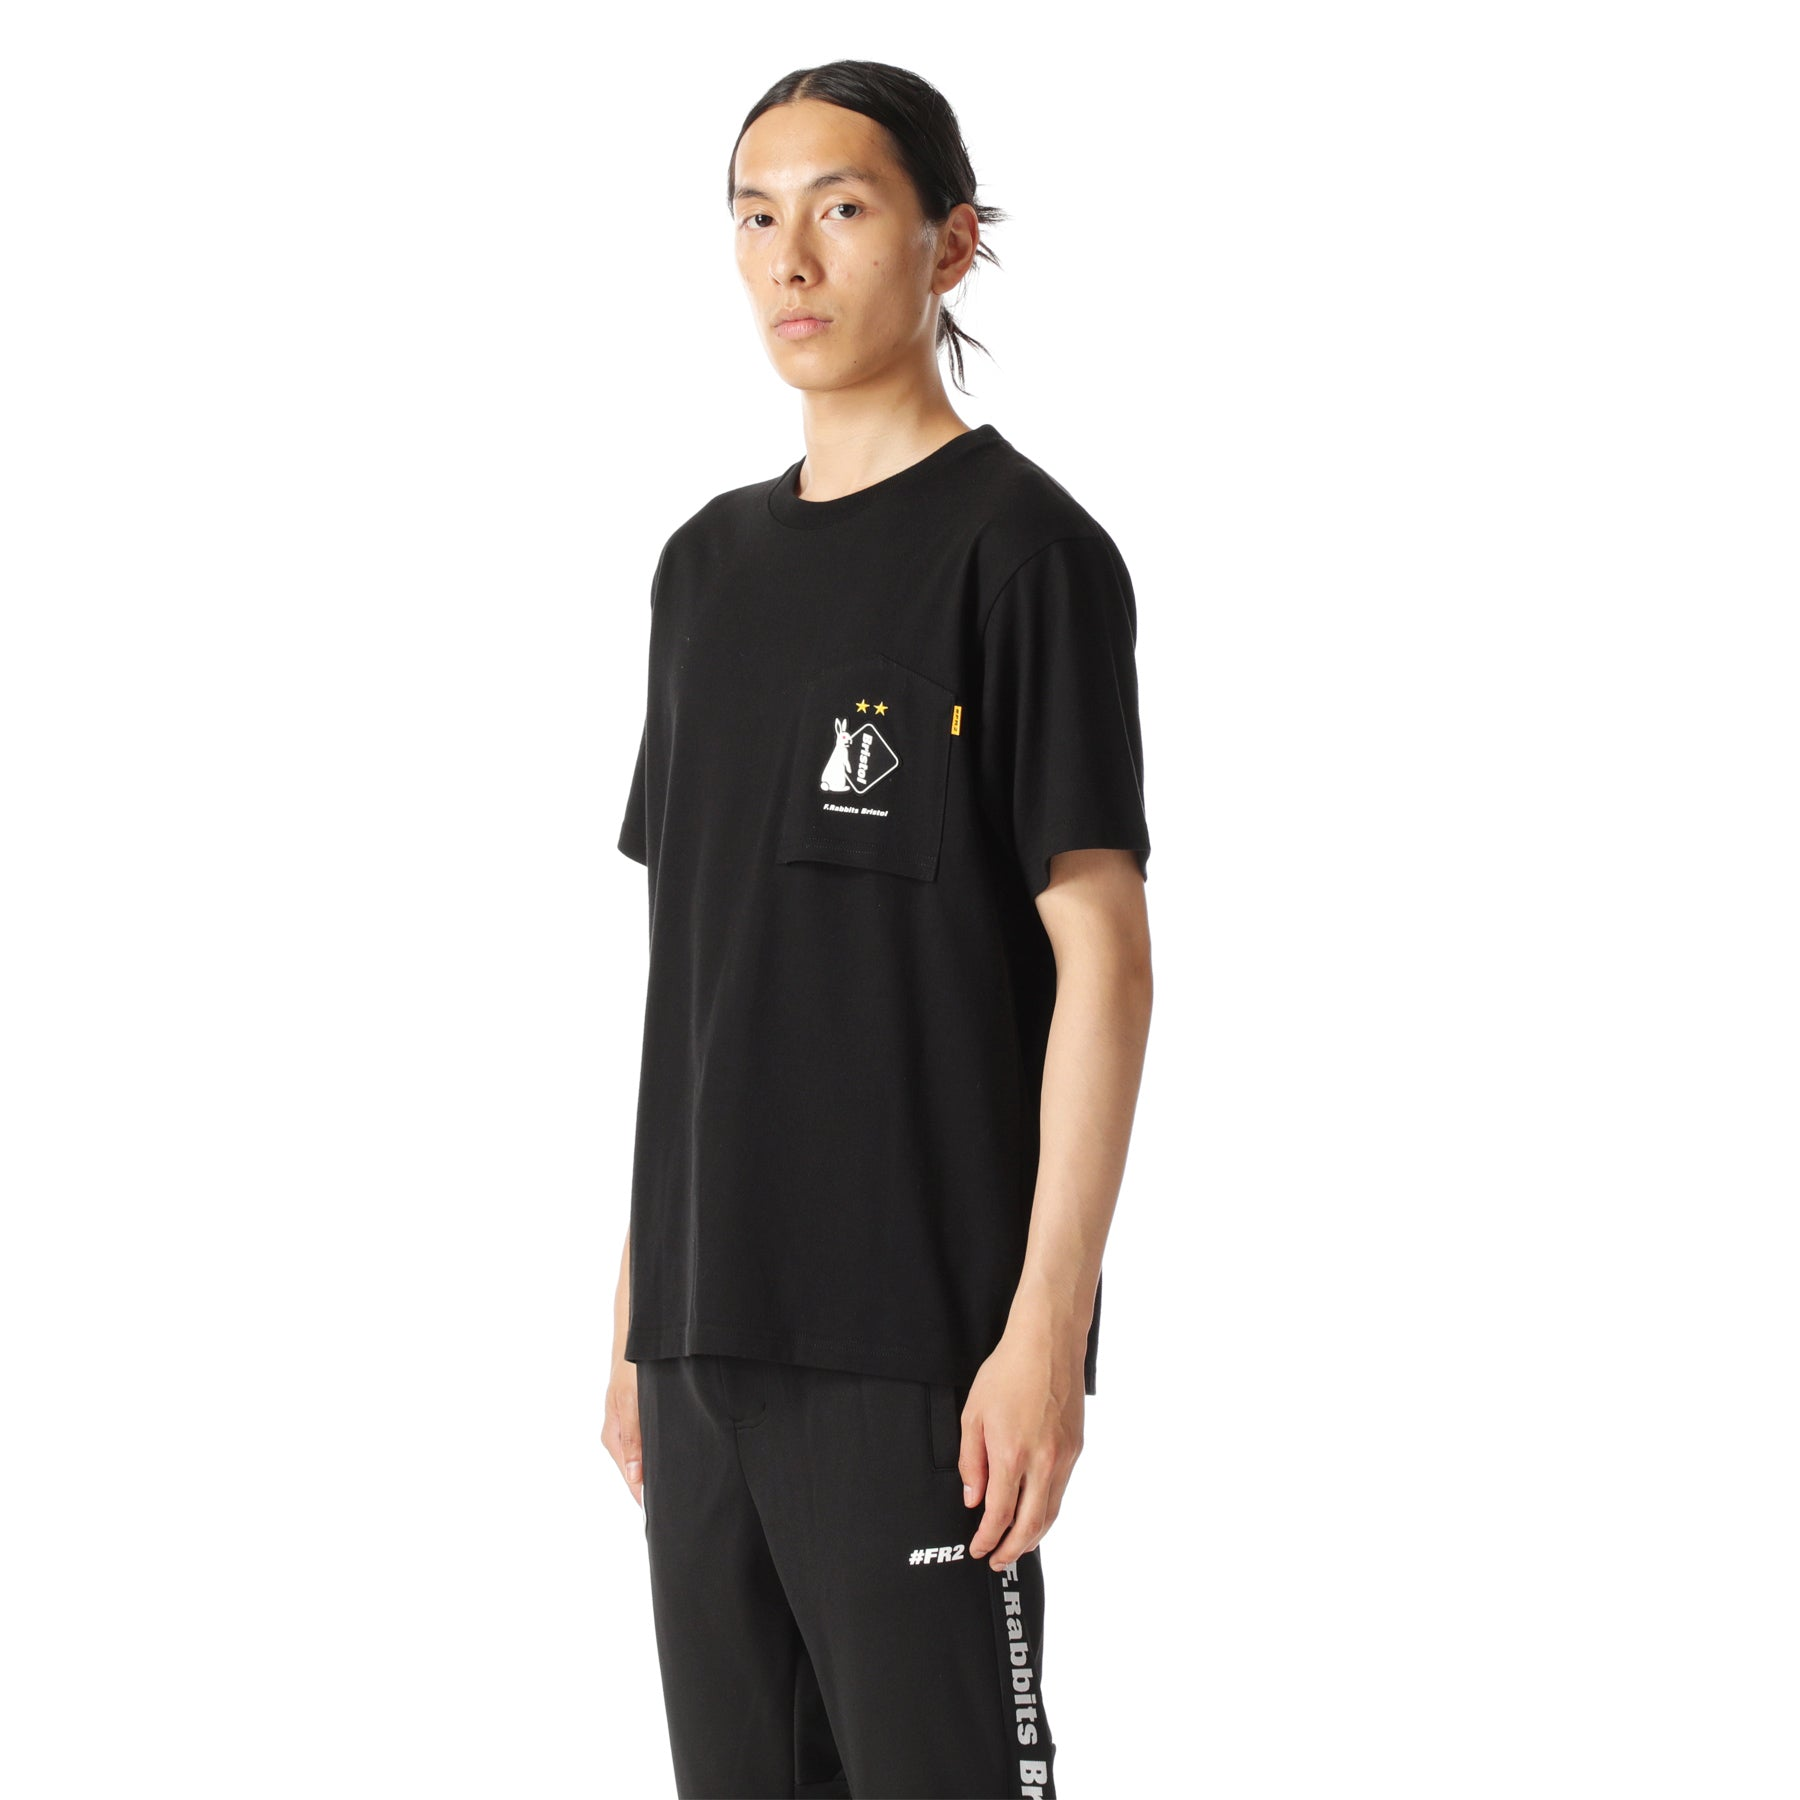 x FCRB Pocket Tee FRC1110 Black